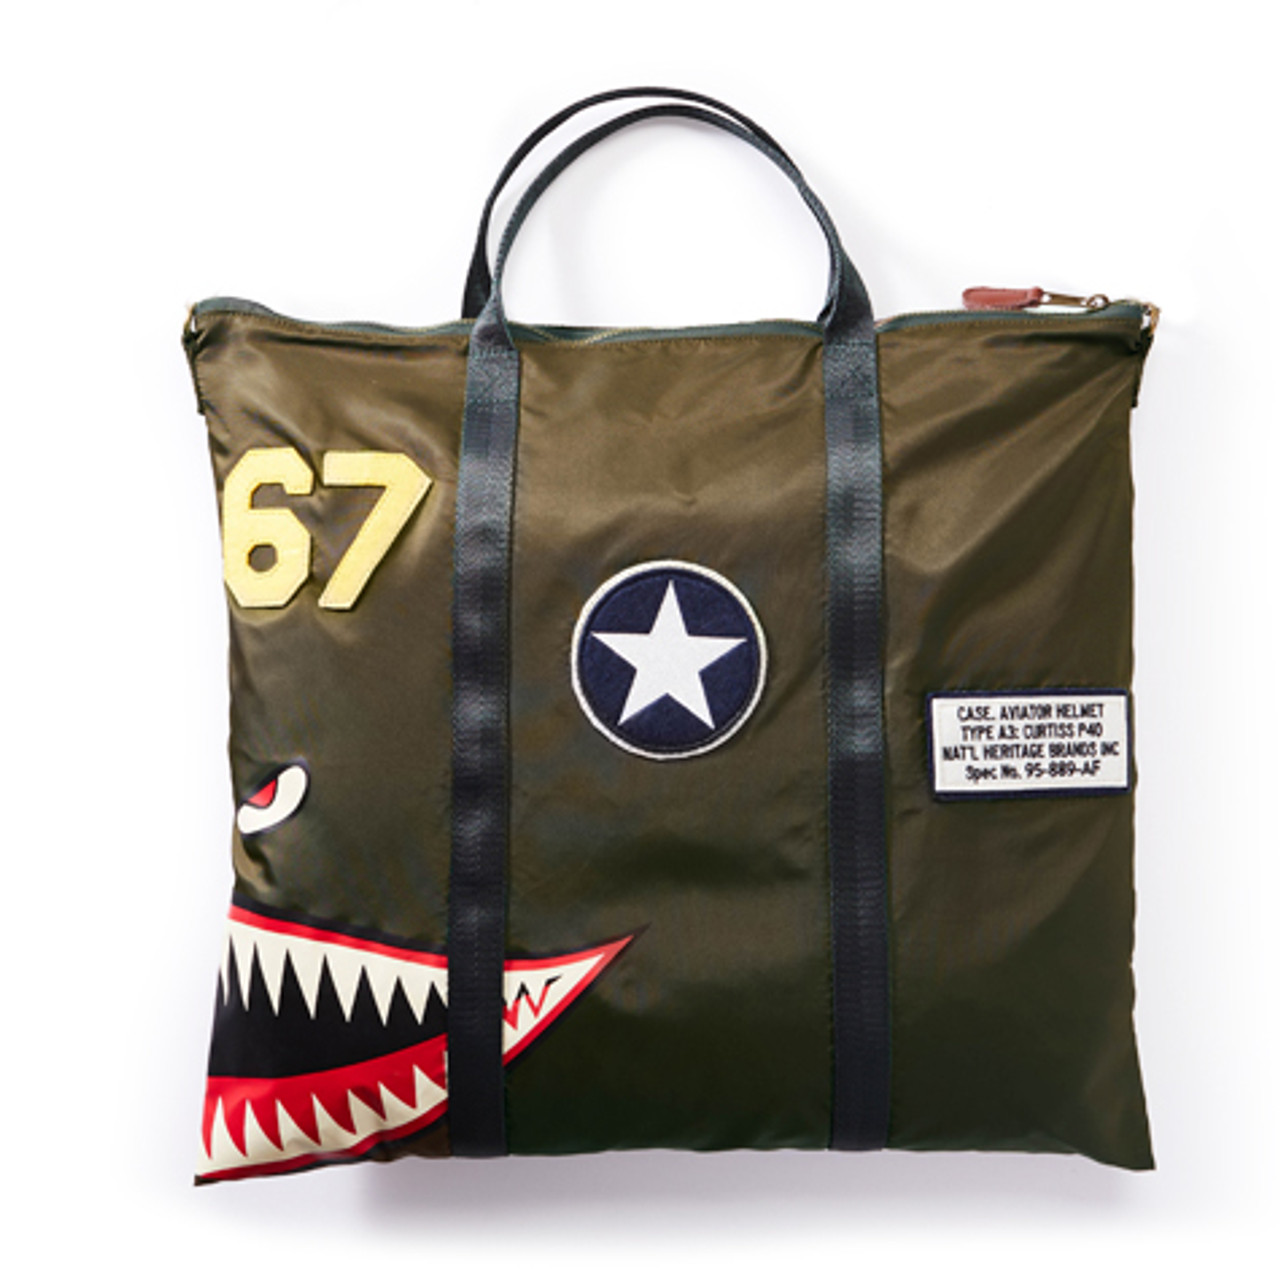 P40 Helmet Bag